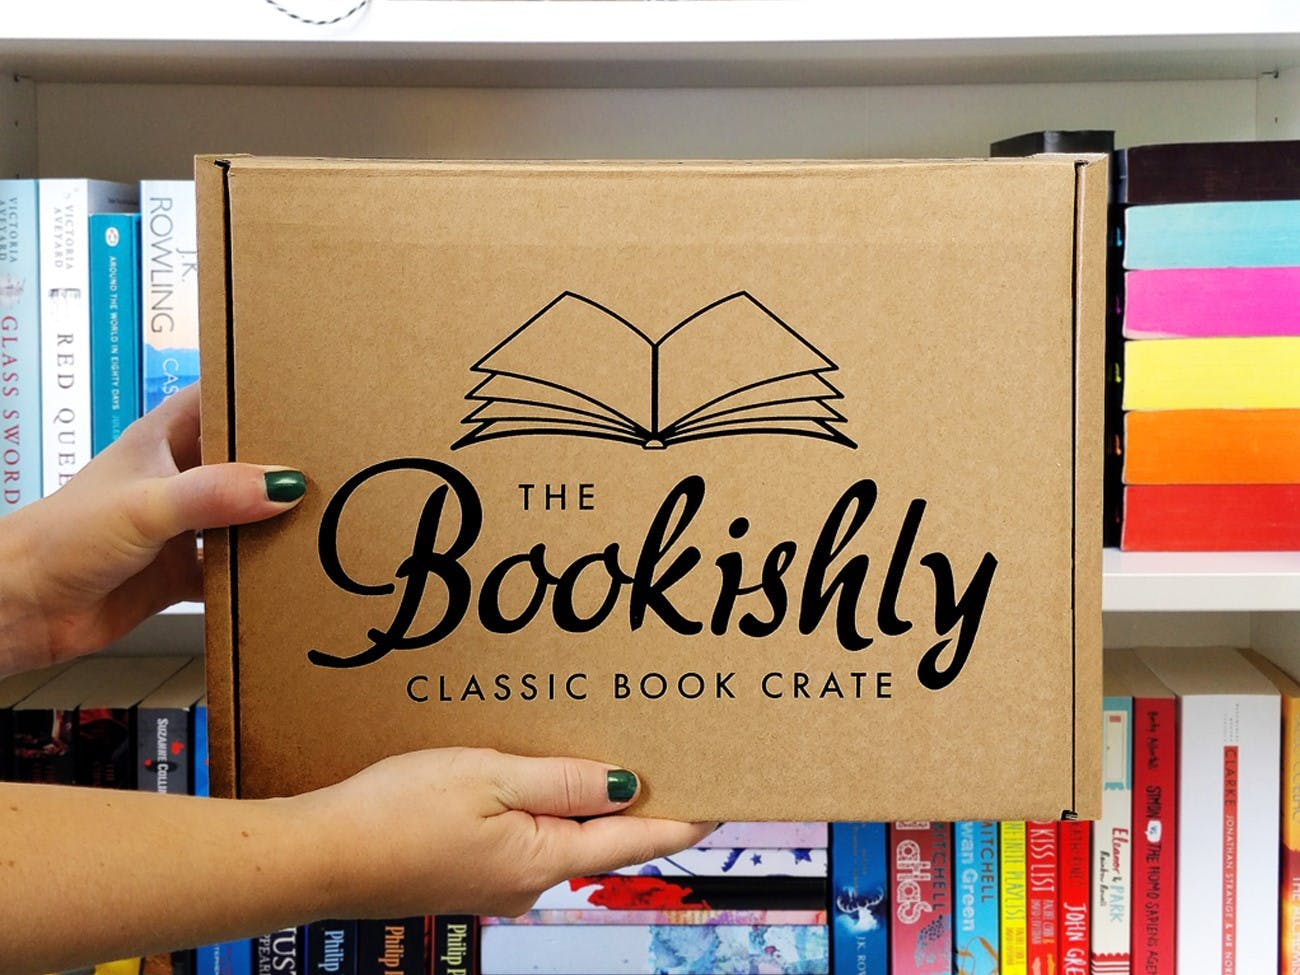 Classic Book Crate - Bookishly